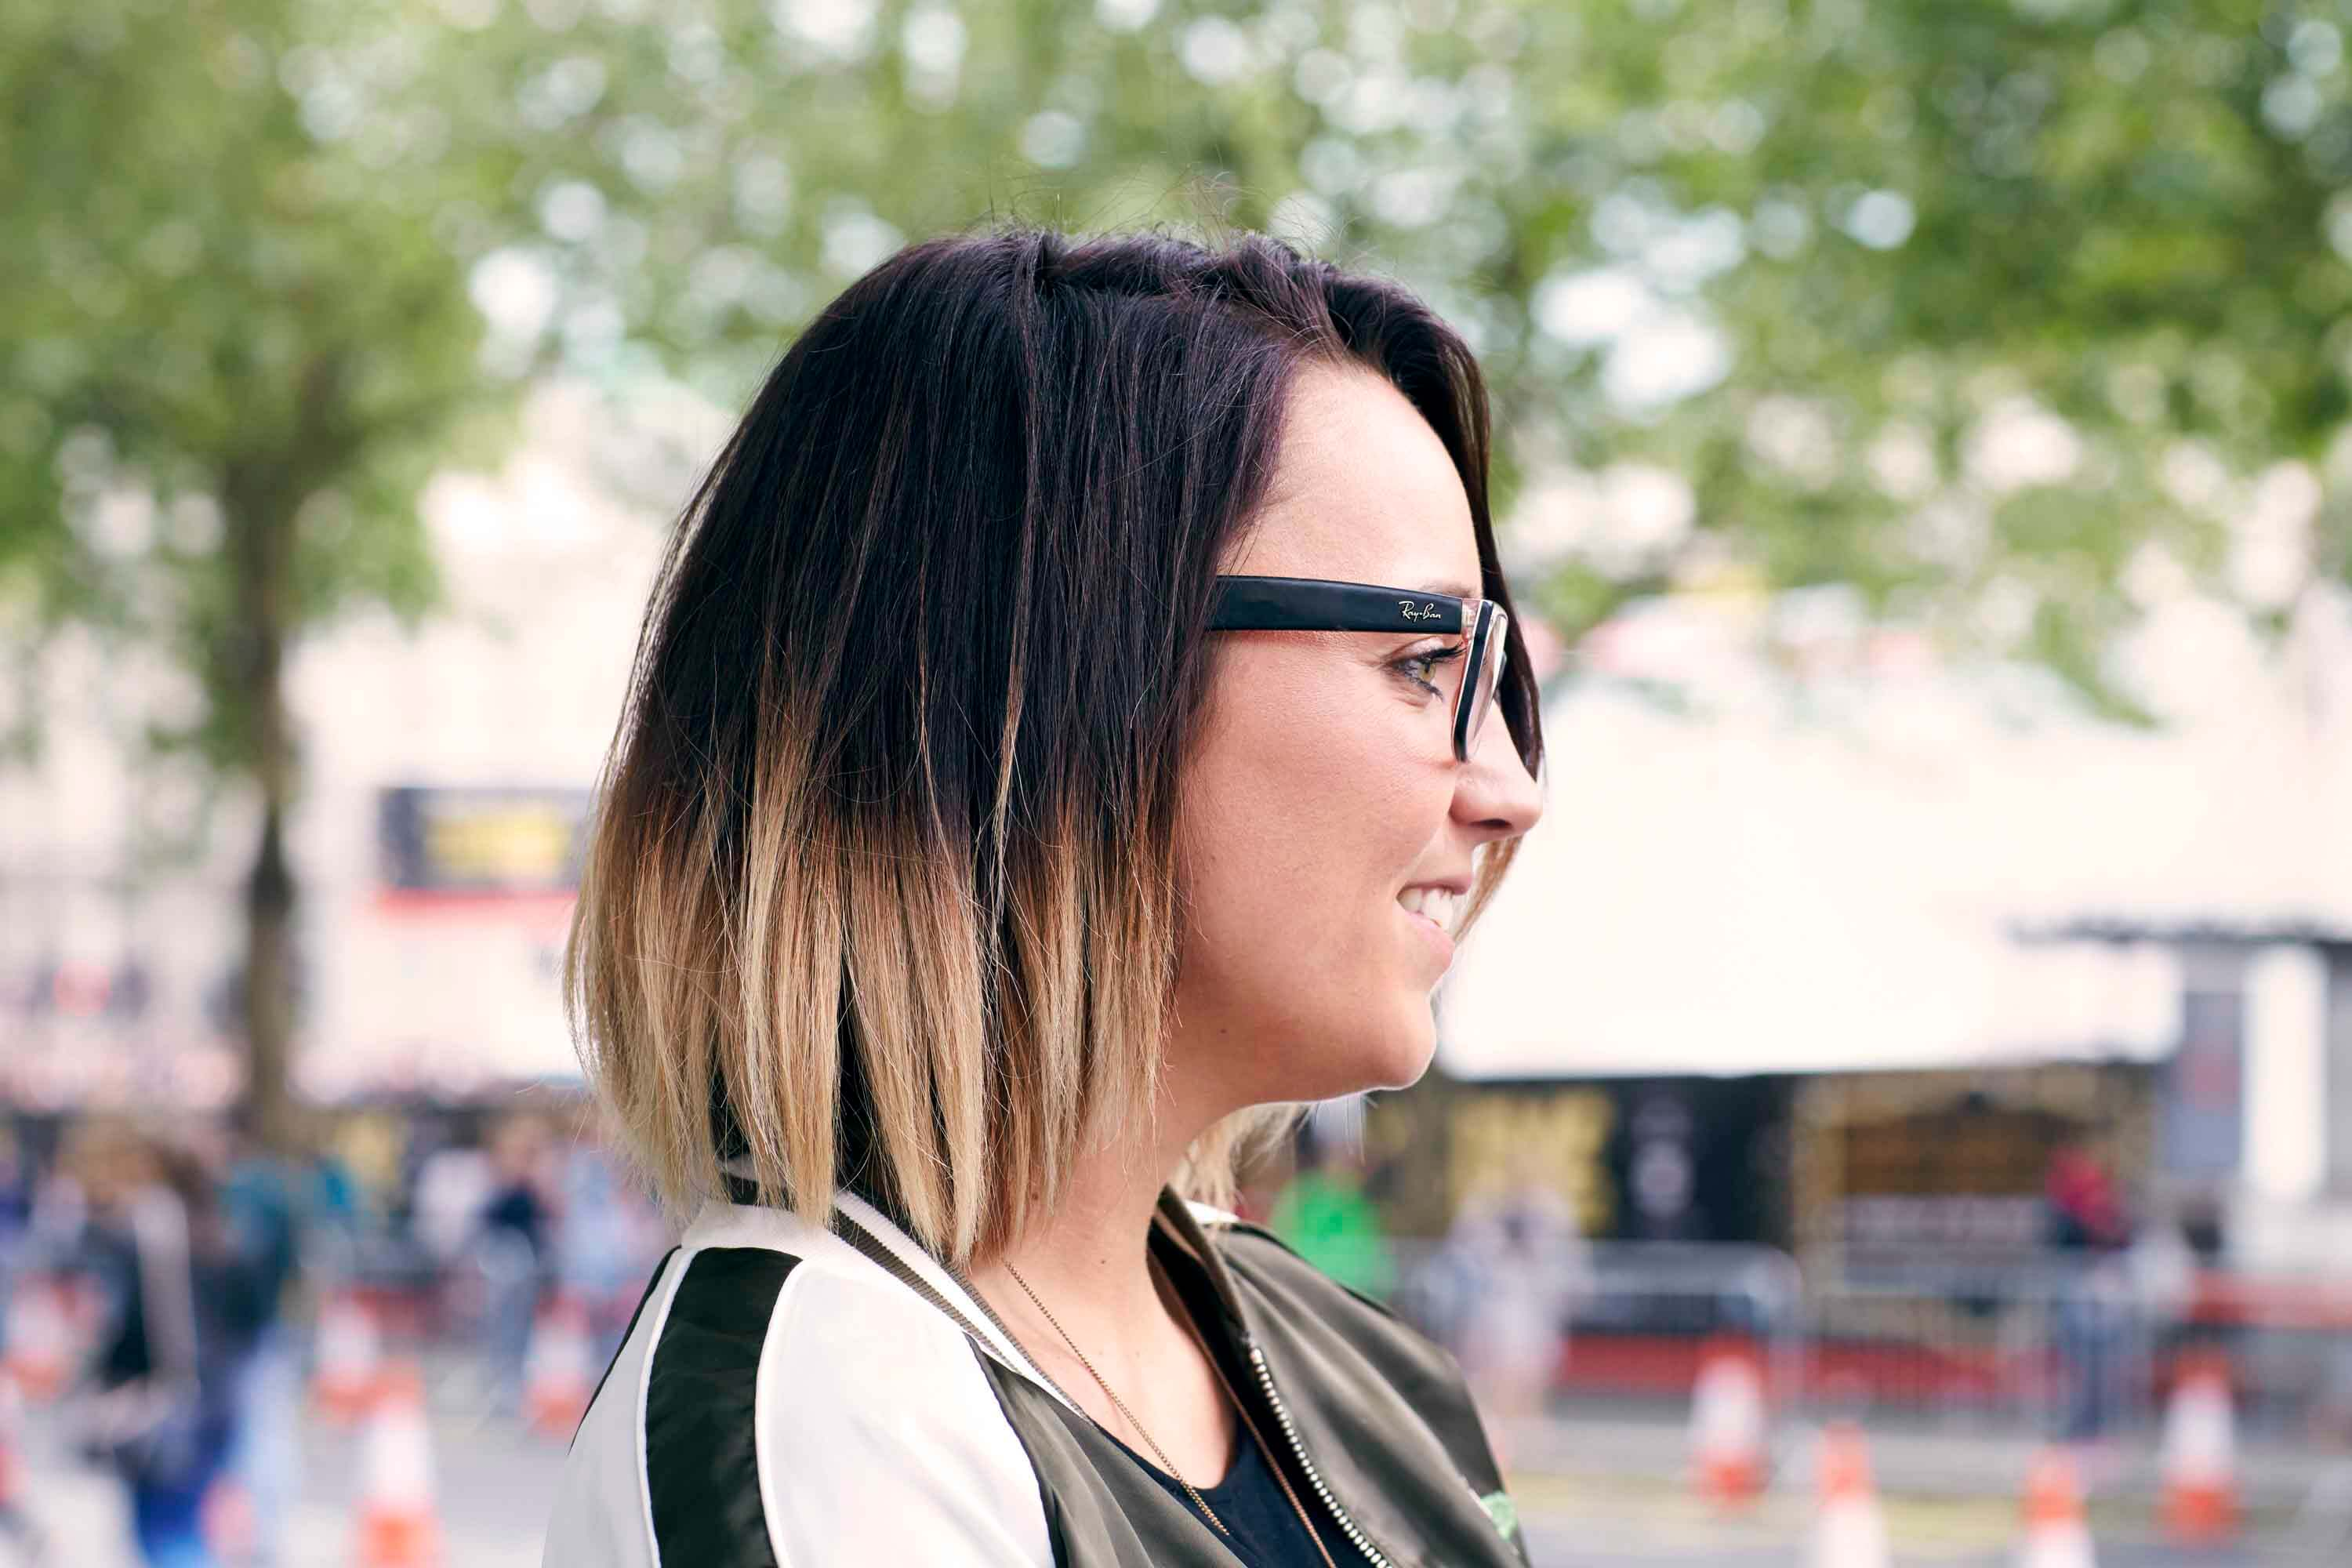 Short Ombre Hair: 5 Street Style Savvy Ways To Wear The Look